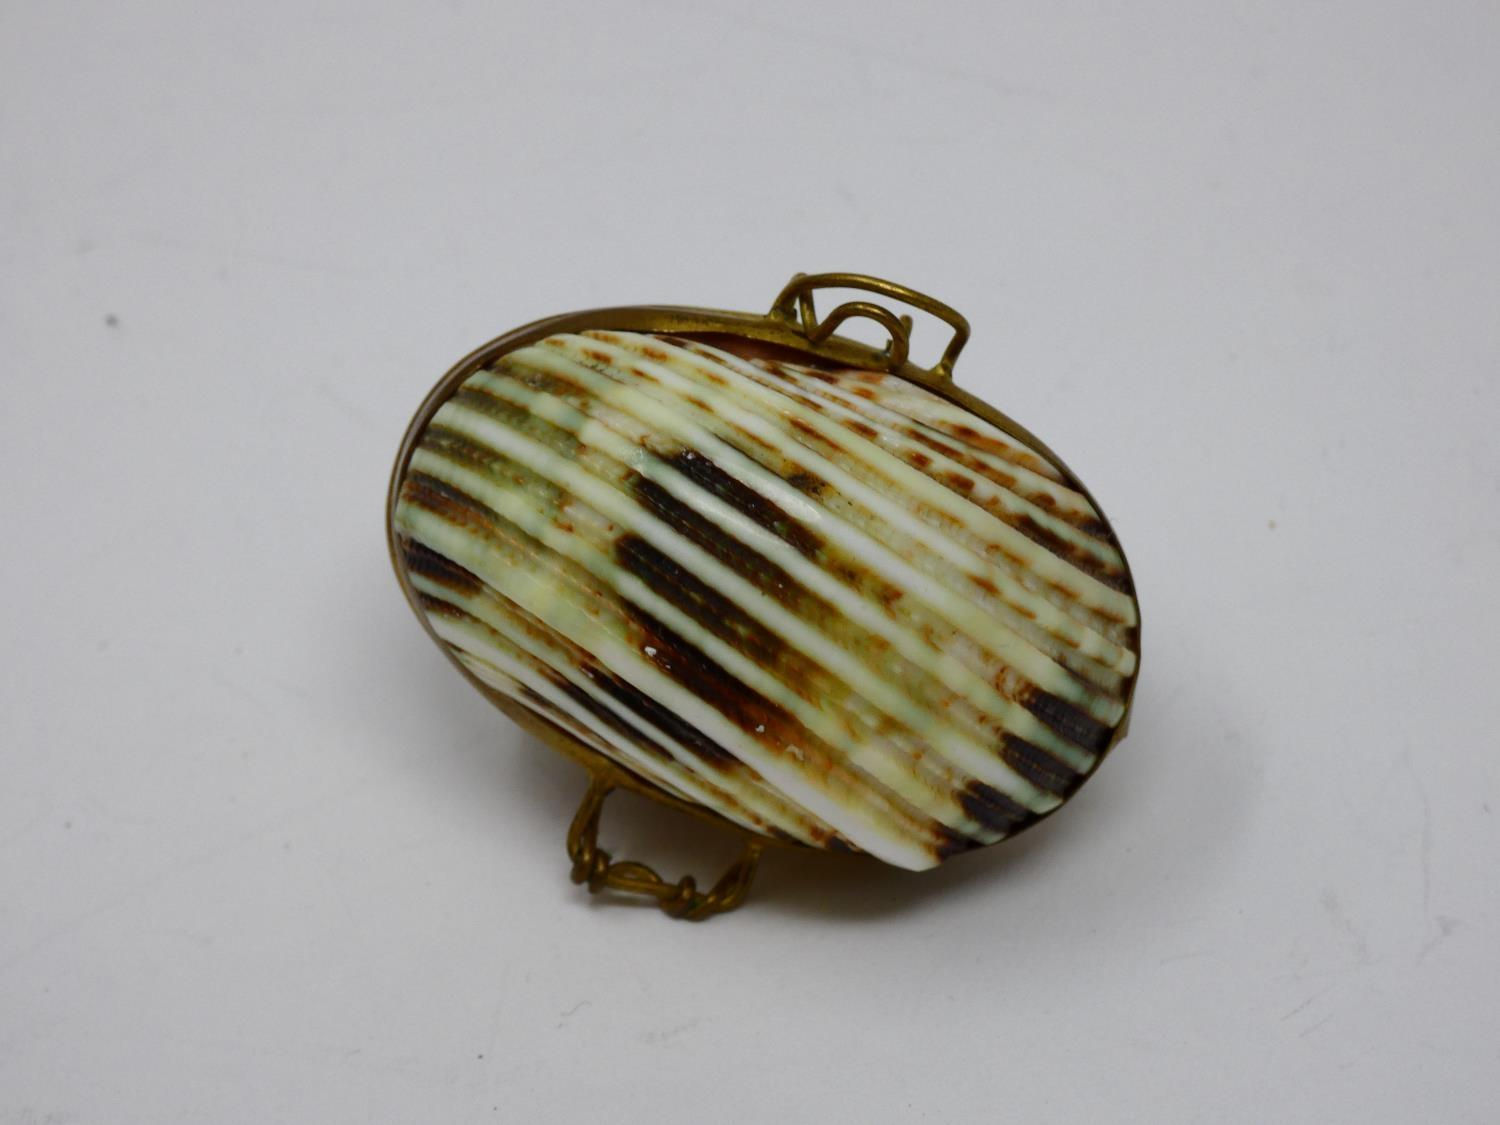 A collection of sea shell trinket boxes, three made from clam shells and three made from sections of - Image 7 of 8